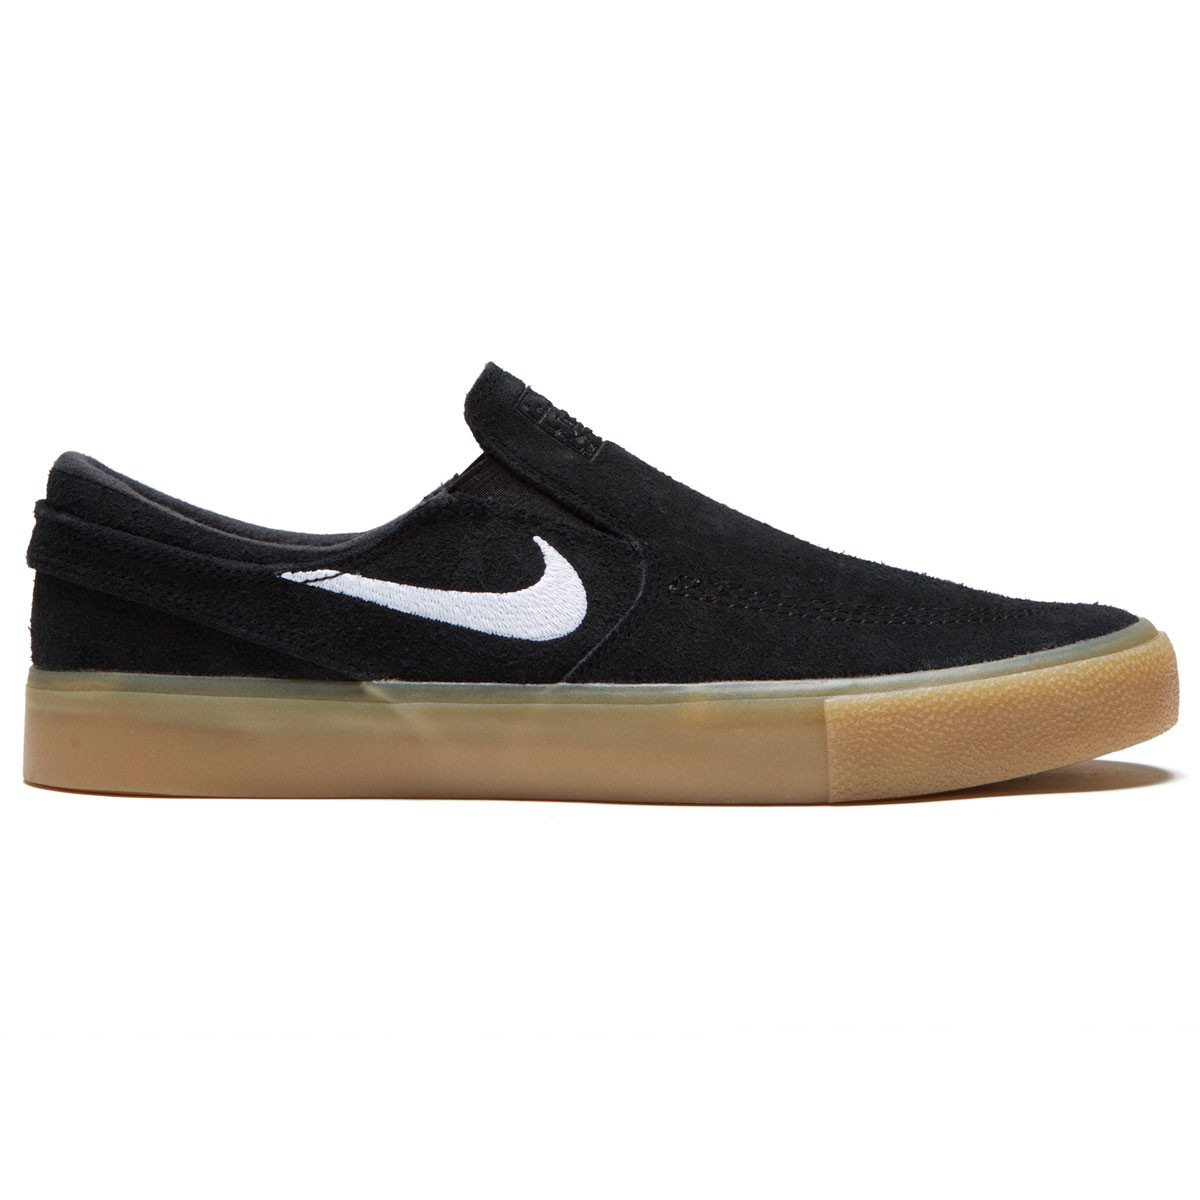 17da49298b Nike SB Zoom Janoski Slip RM Shoes - Black/White/Black/Gum Light